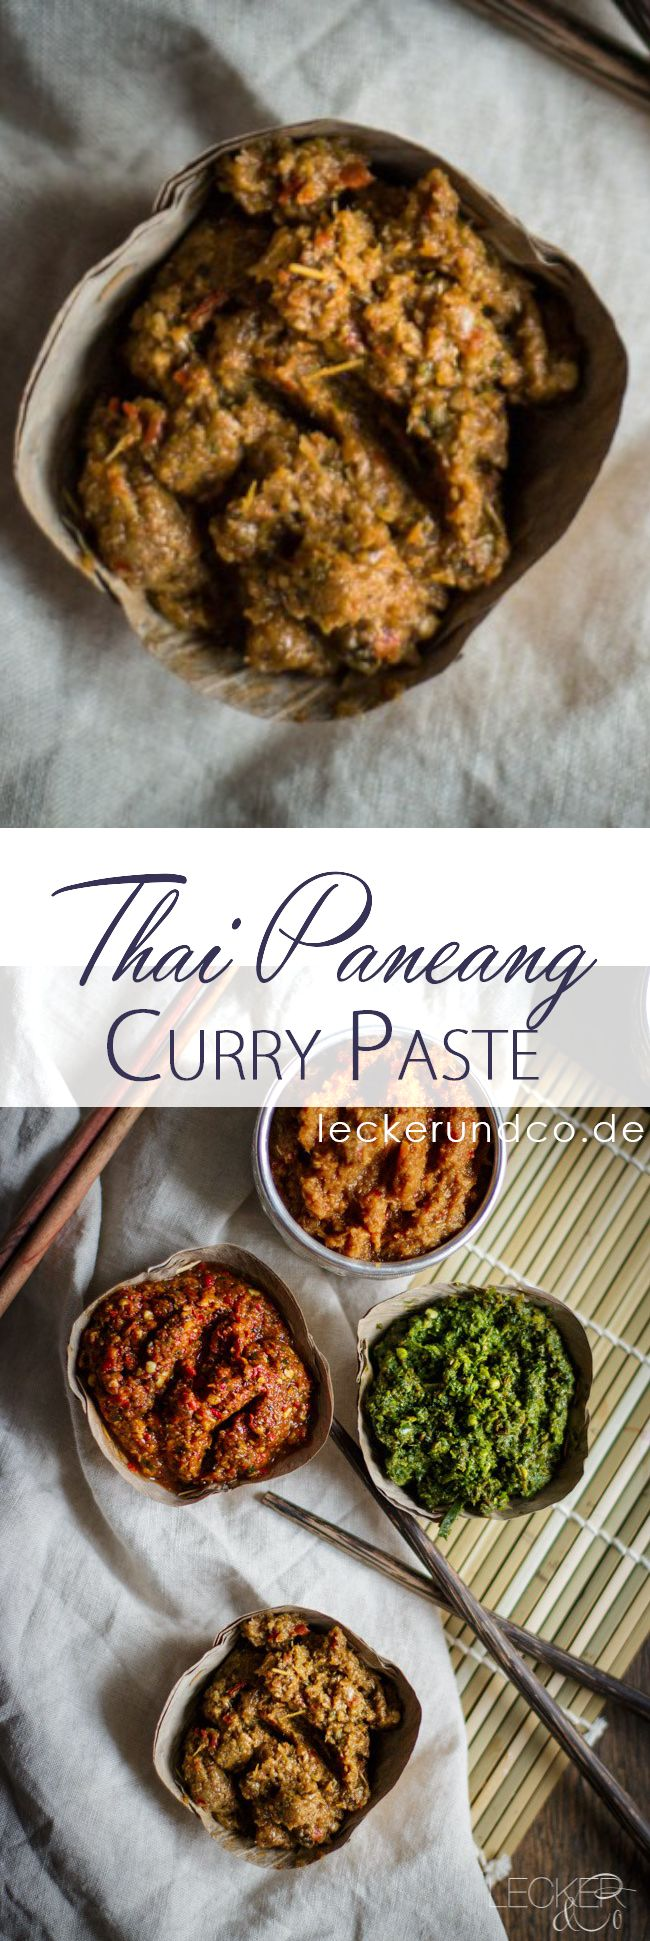 Thai Paneang Curry Paste | Thailändische Paneang Currypaste